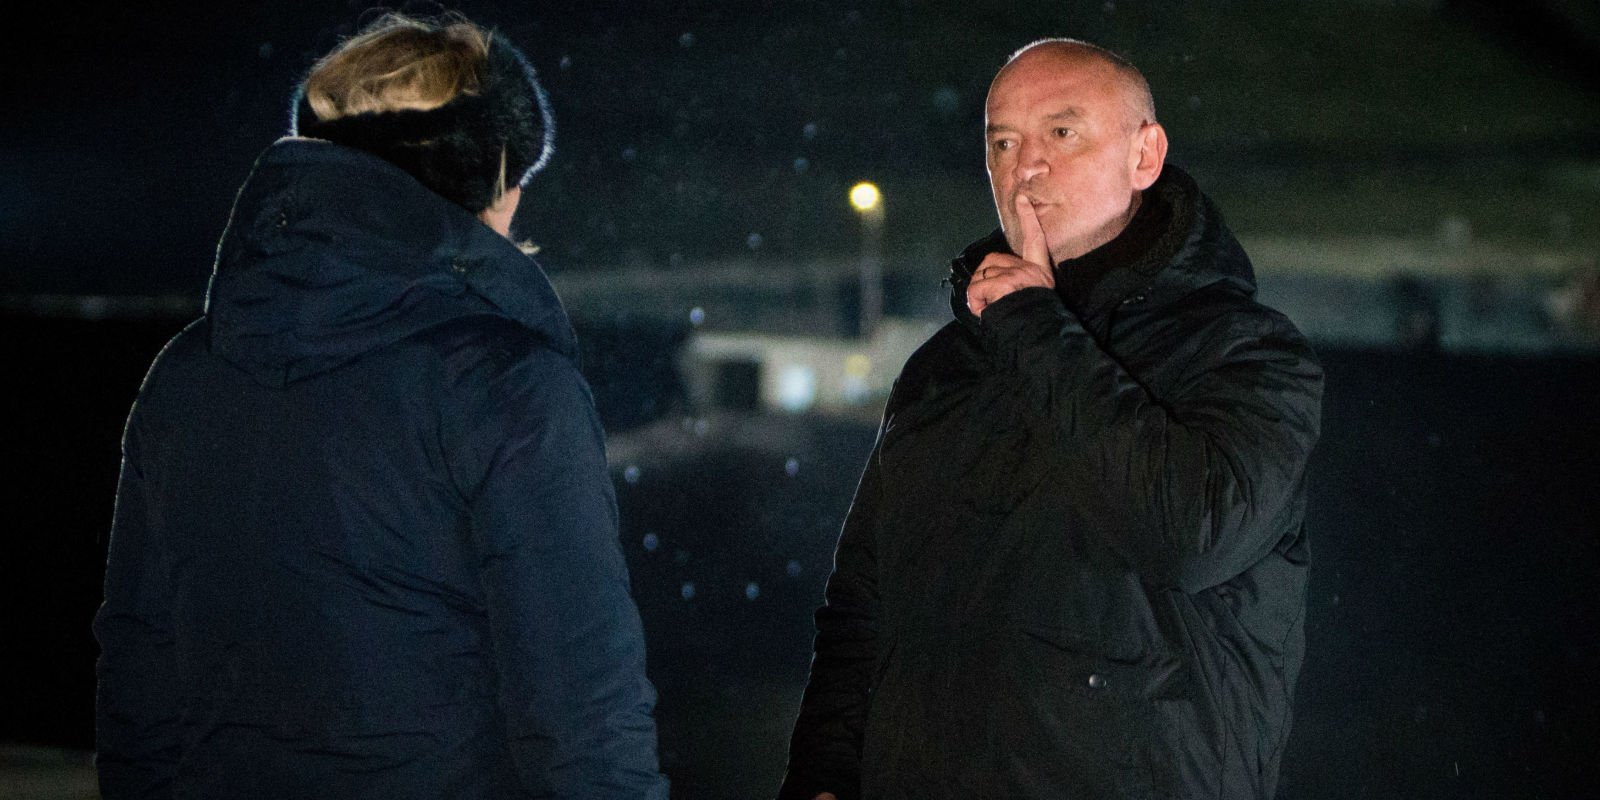 Coronation Street reveals Pat Phelan's downfall as two bodies are found